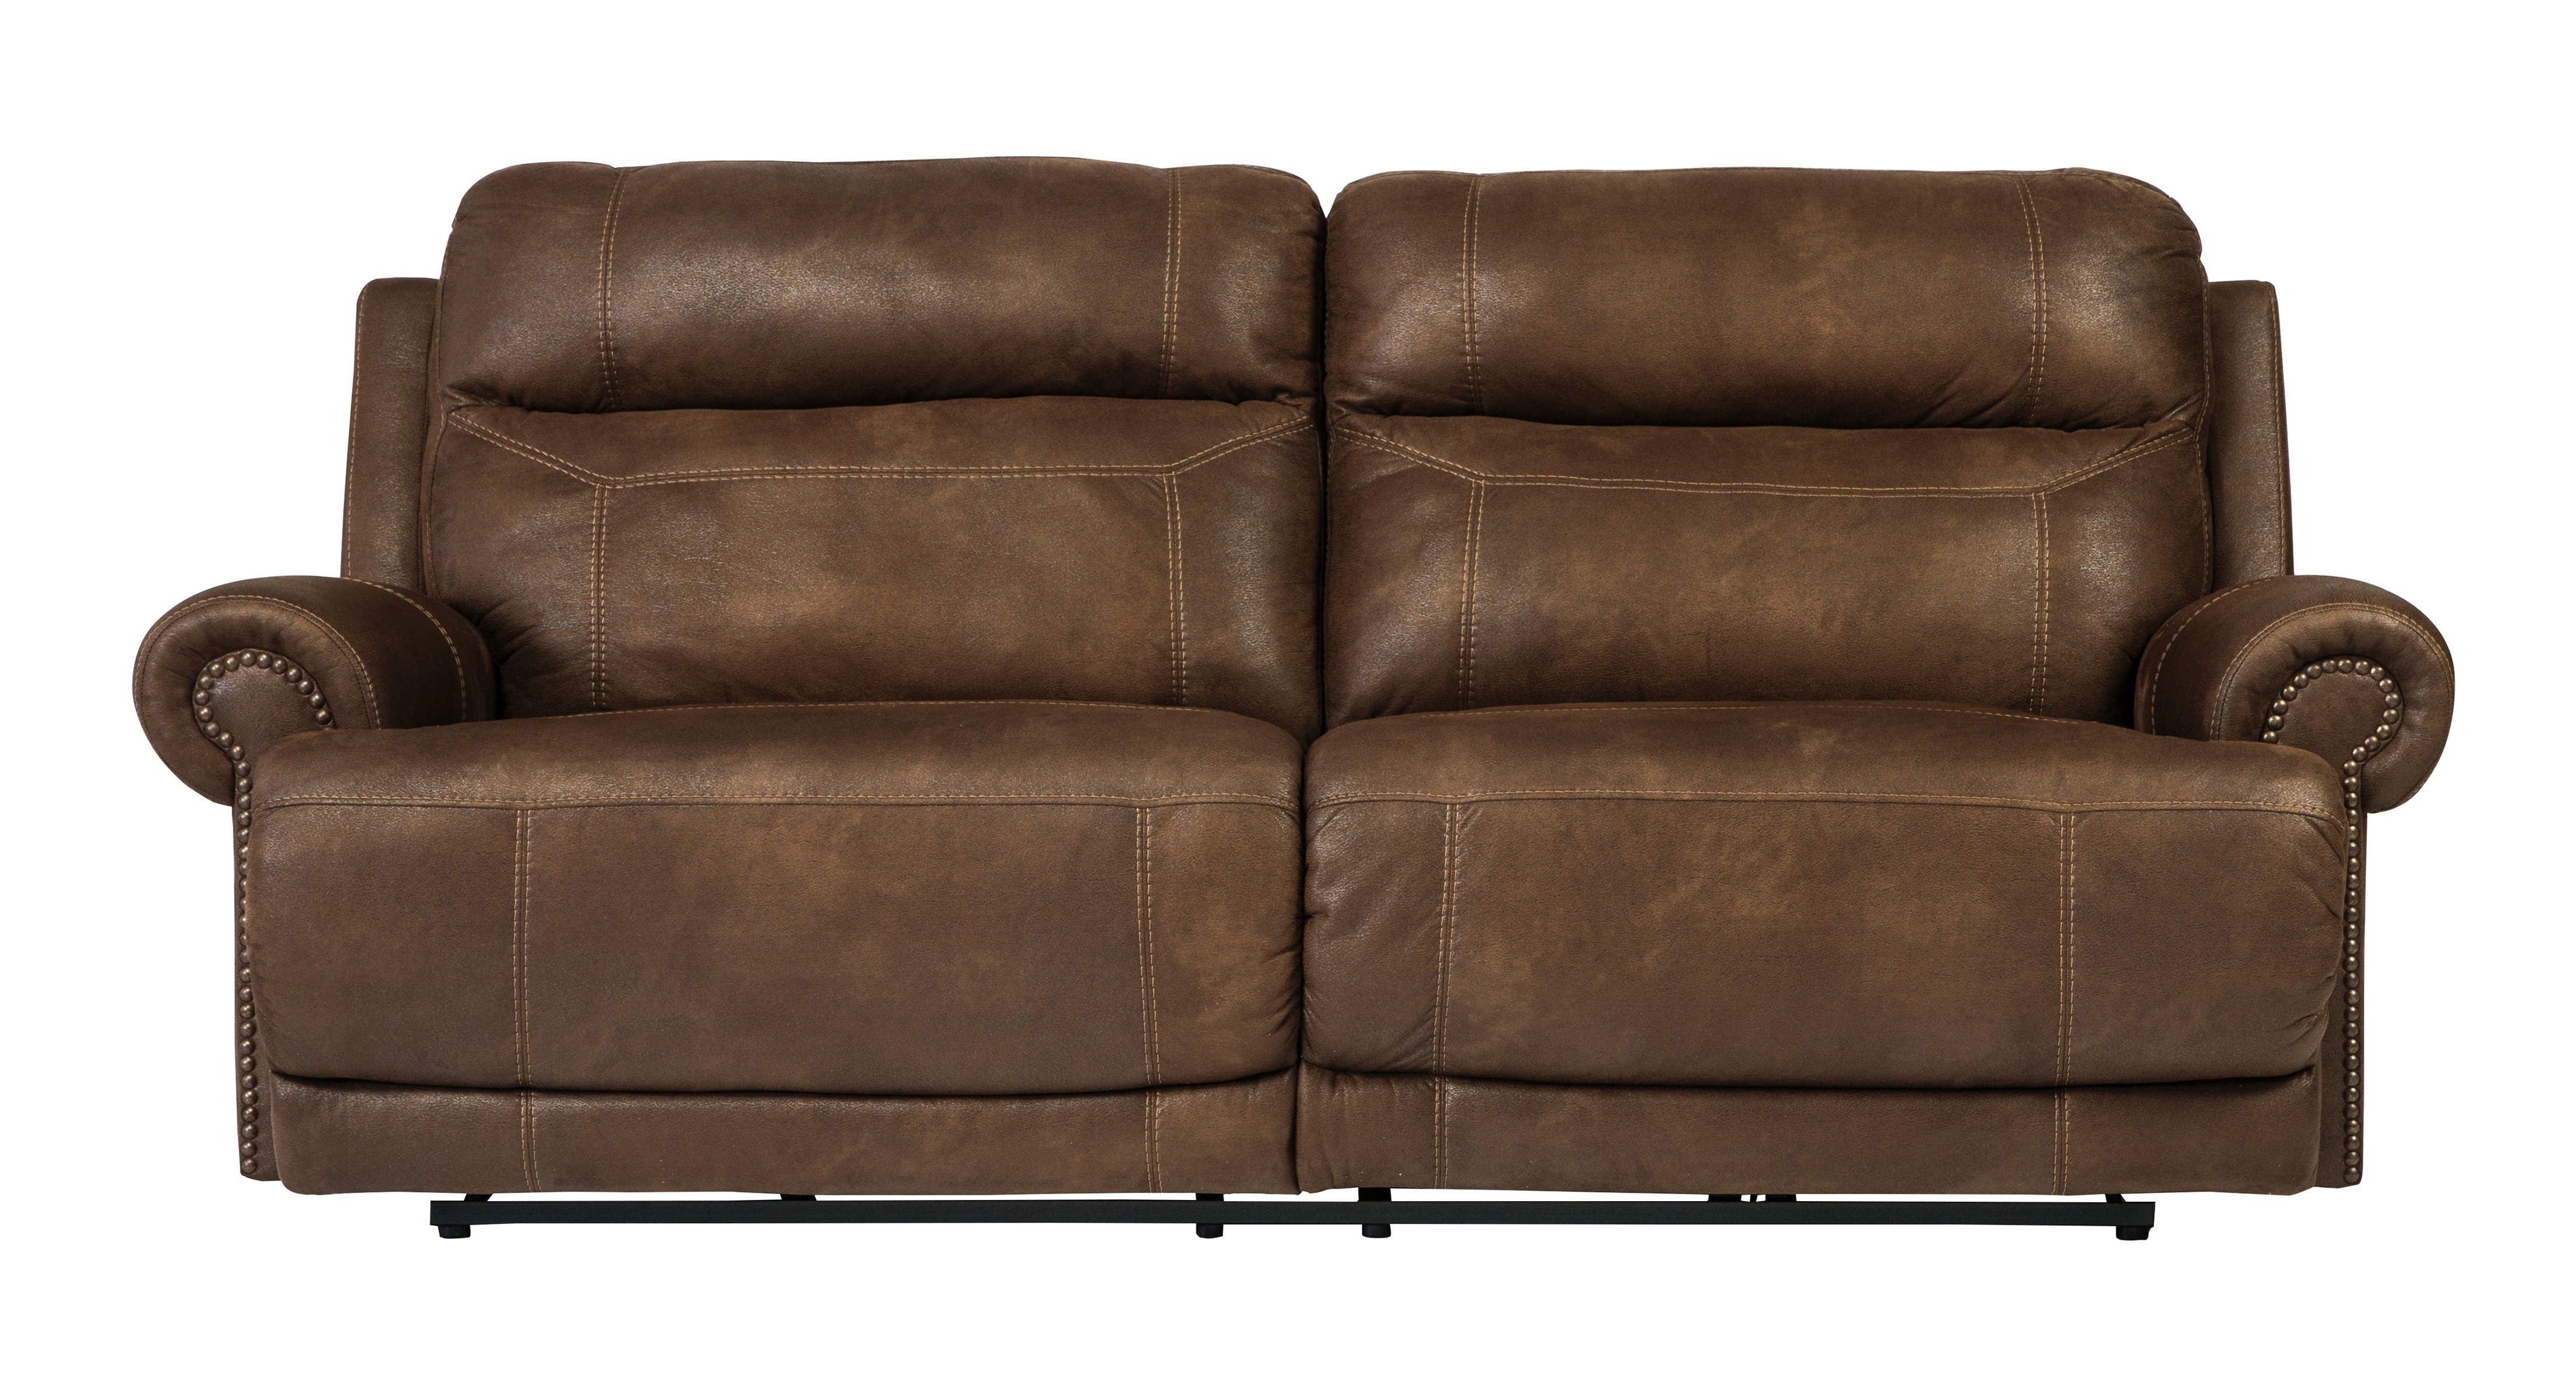 Buy Austere – Brown 2 Seat Reclining Sofasignature Design From Pertaining To Most Recently Released 2 Seat Recliner Sofas (View 2 of 15)